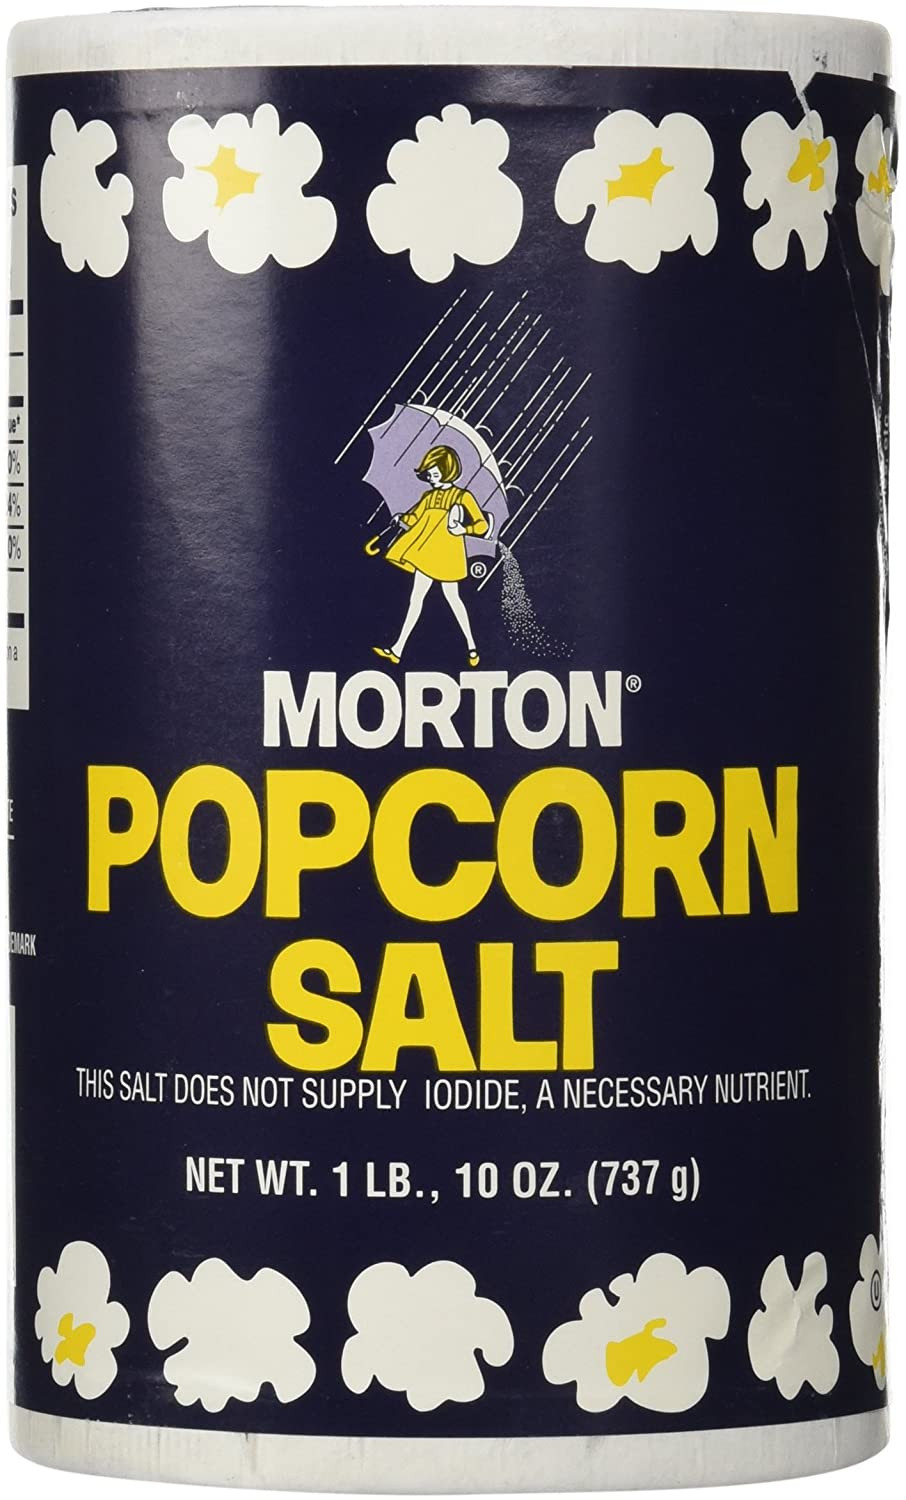 1Lb 10oz Morton Popcorn Salt For Green Salad, Corn on the Cob, French Fries, Nuts : Grocery & Gourmet Food